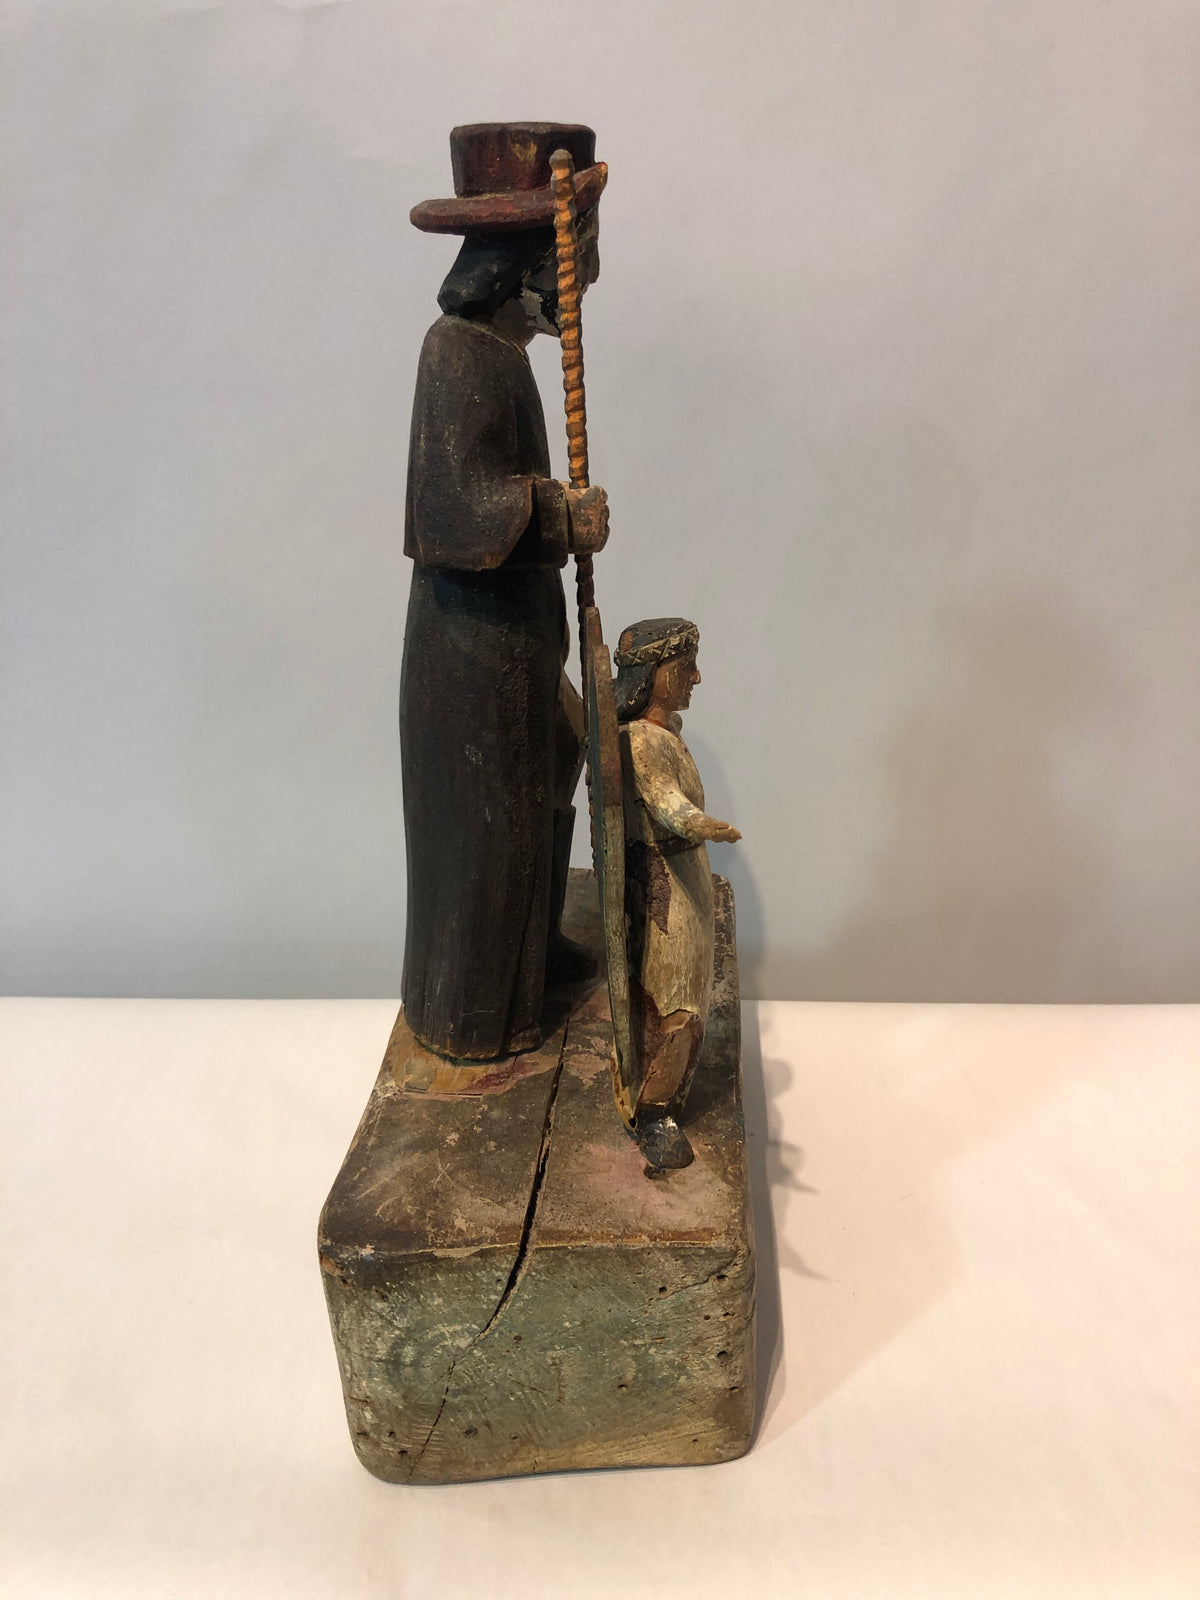 Antique Folk Art Wood Carved Sculpture